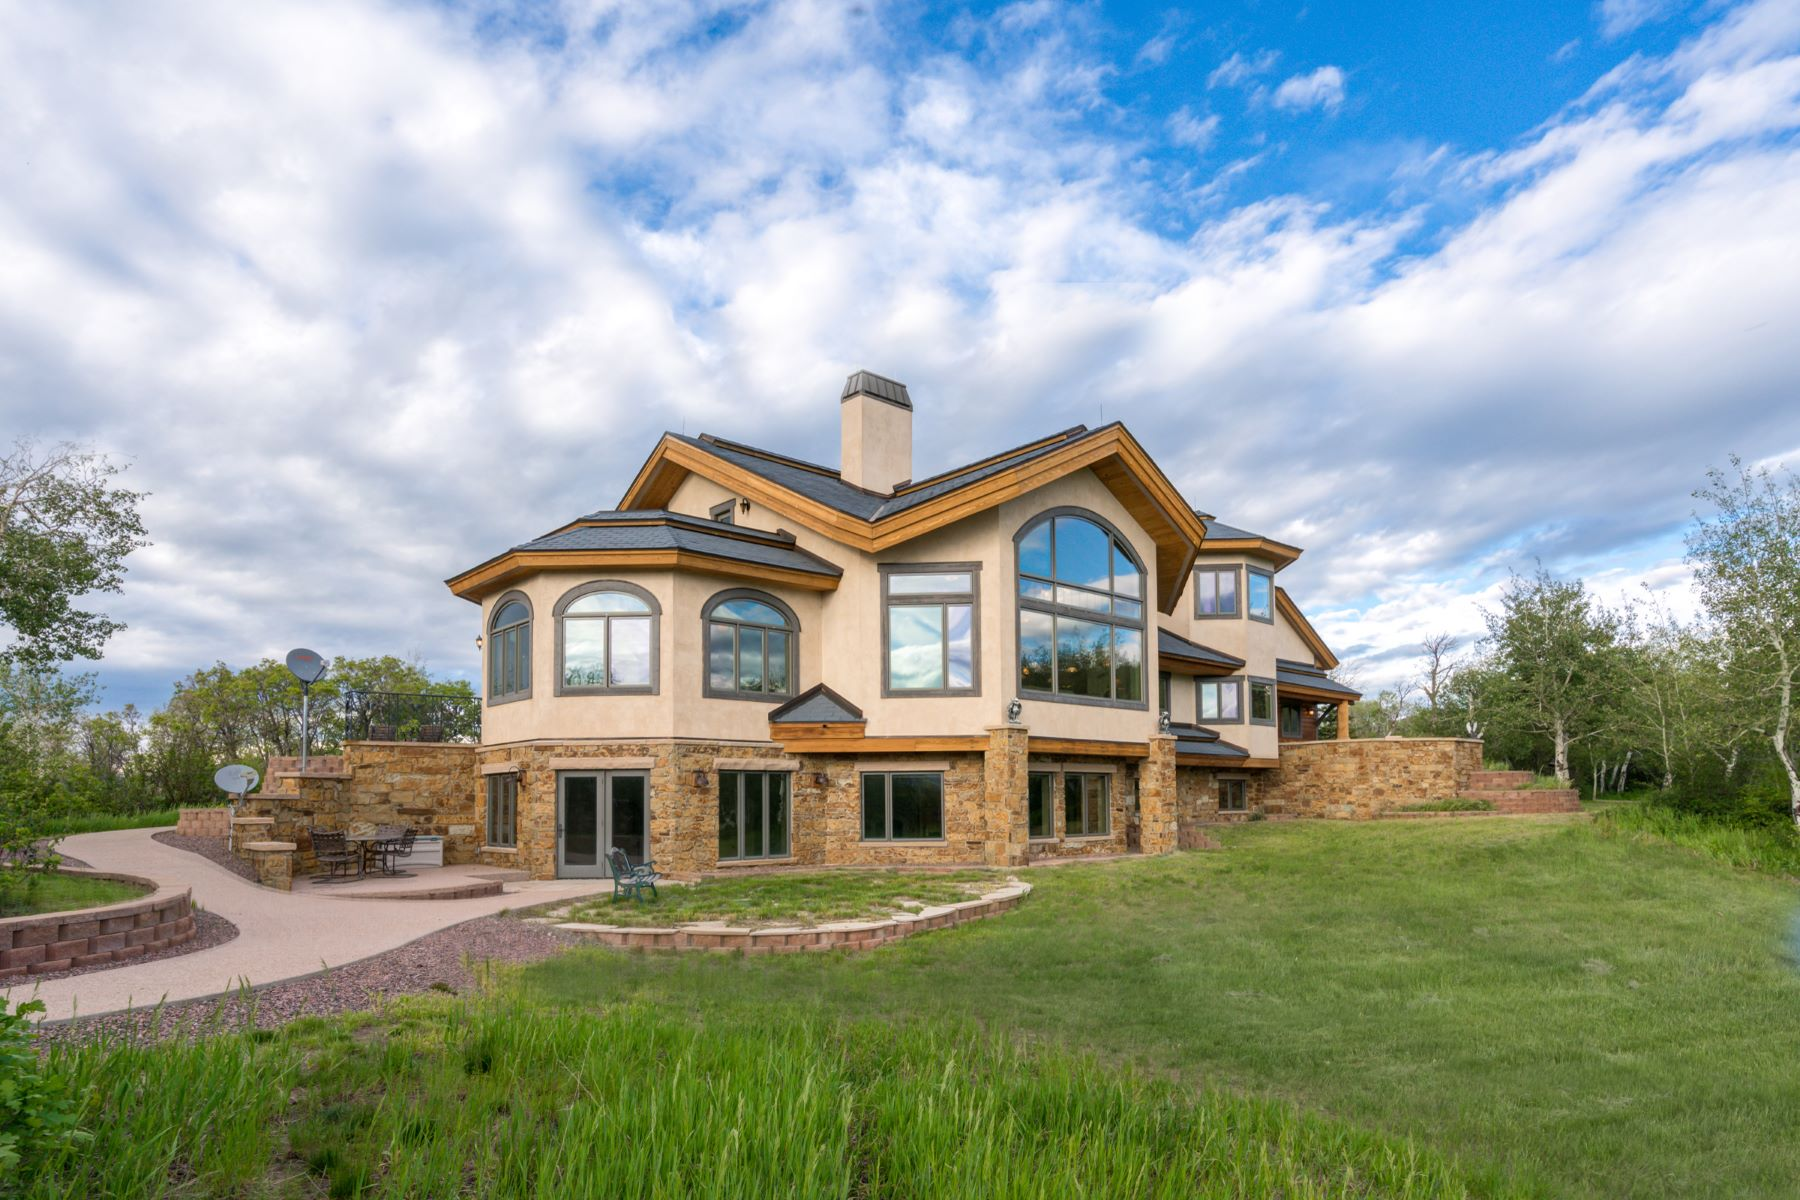 Single Family Home for Sale at Lost Meadow Estate 26940 Sundance Trail Steamboat Springs, Colorado 80487 United States